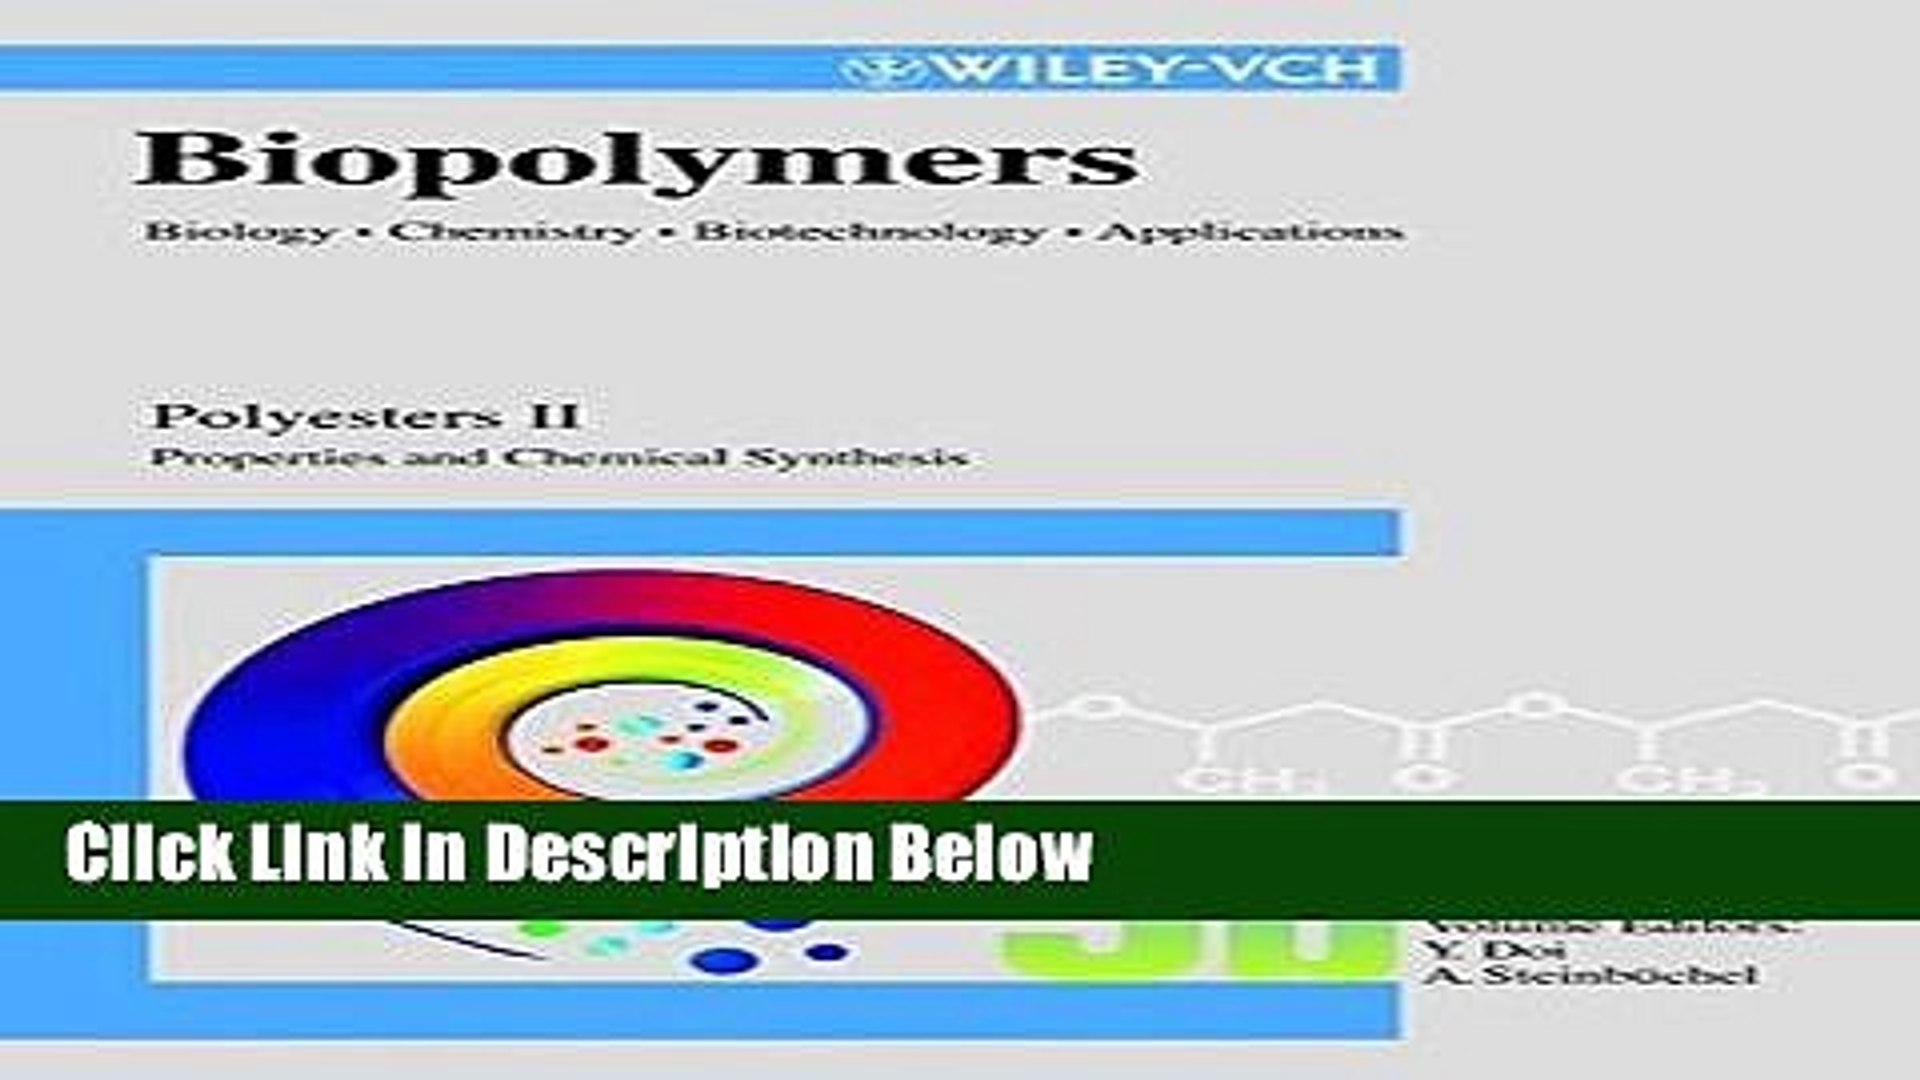 Books Polyesters II: Properties and Chemical Synthesis (Biopolymers, Vol. 3b) Free Online